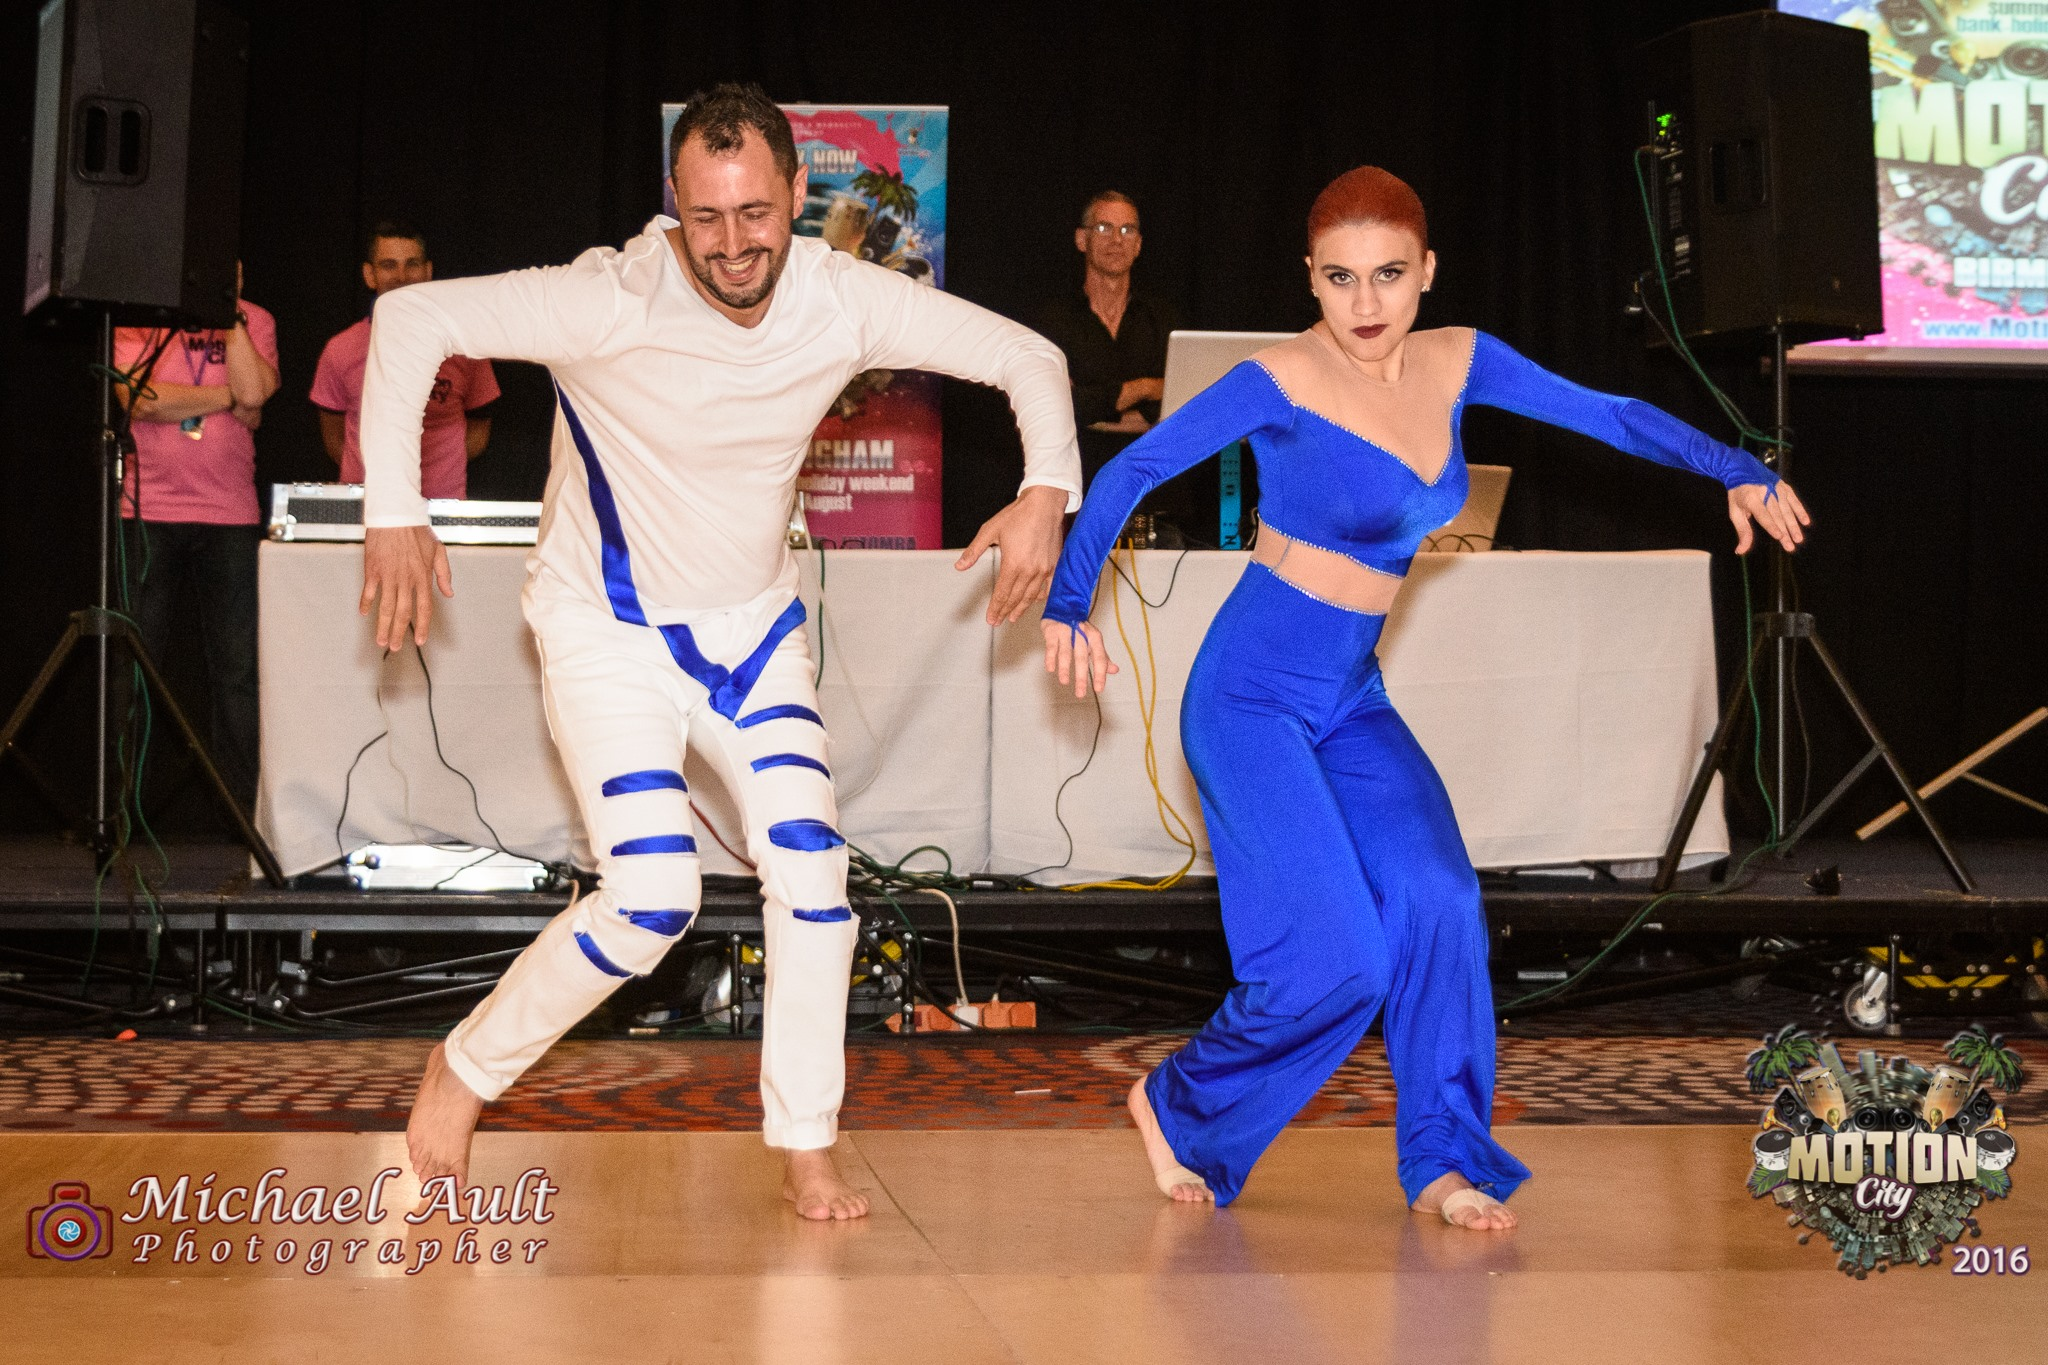 FK Dance undefined classes in London